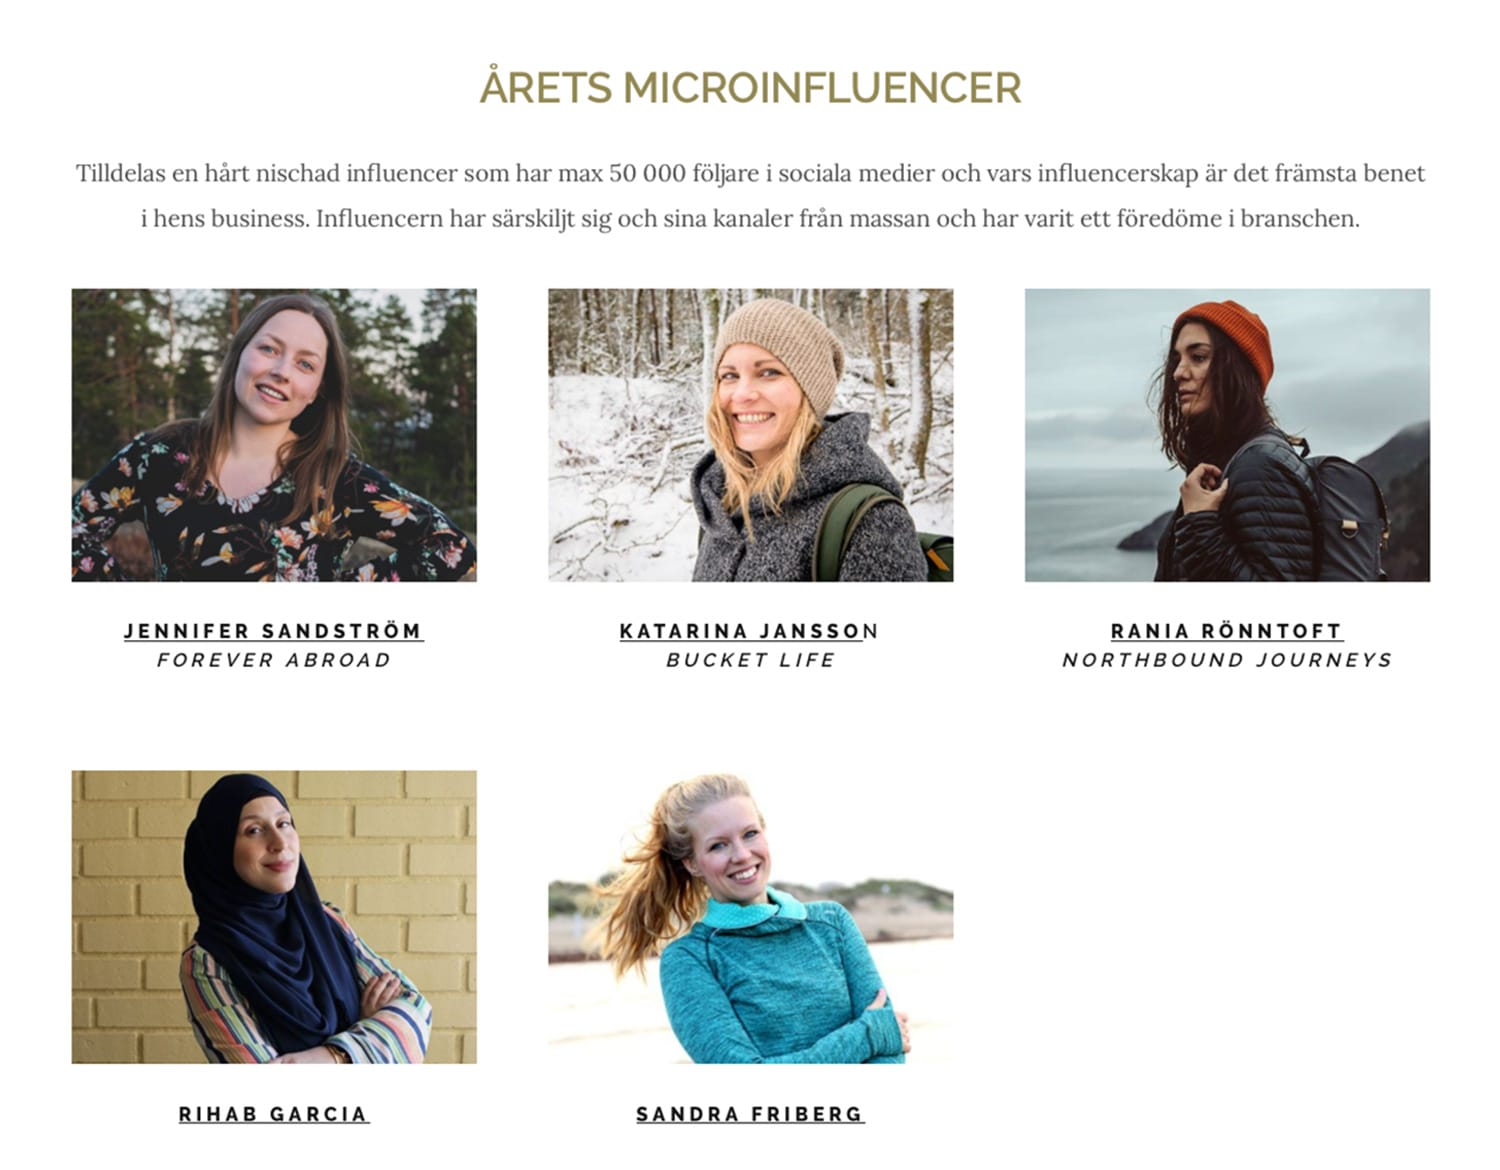 Nominees for micro influencer of the year 2018